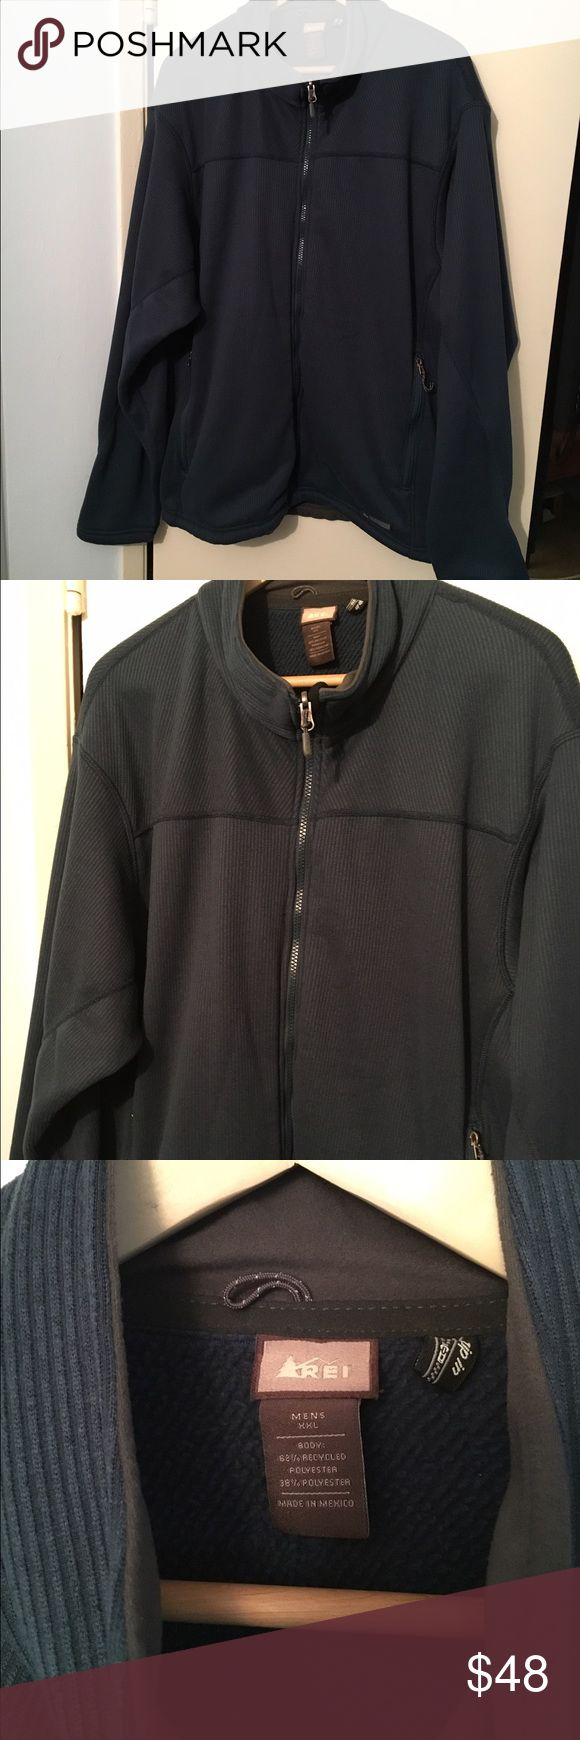 REI Men's Fleece Jacket XXL Classic blue men's fleece jacket from REI. In new condition (no tag) it has zippered pockets and a drawstring at the waist. REI Jackets & Coats